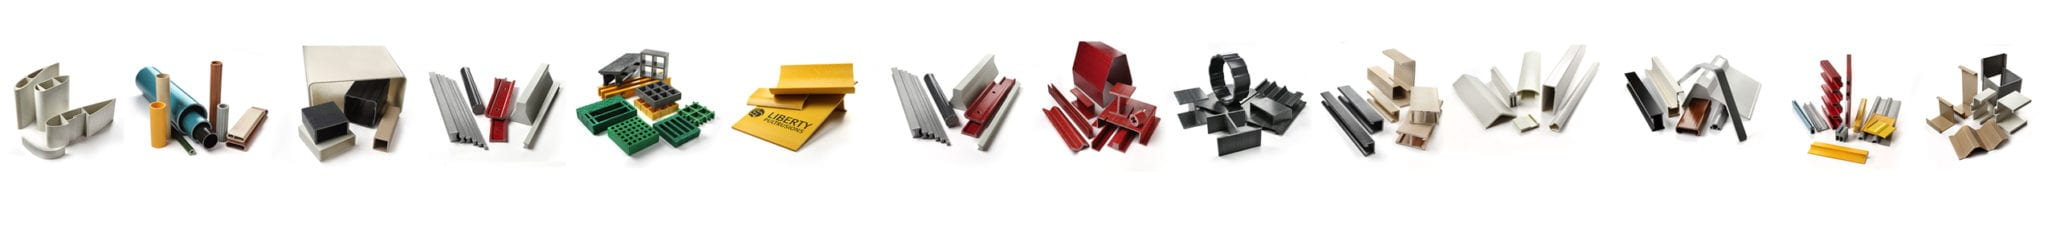 Polyurethane Pultrusions   Pultruded Products   Liberty Pultrusions